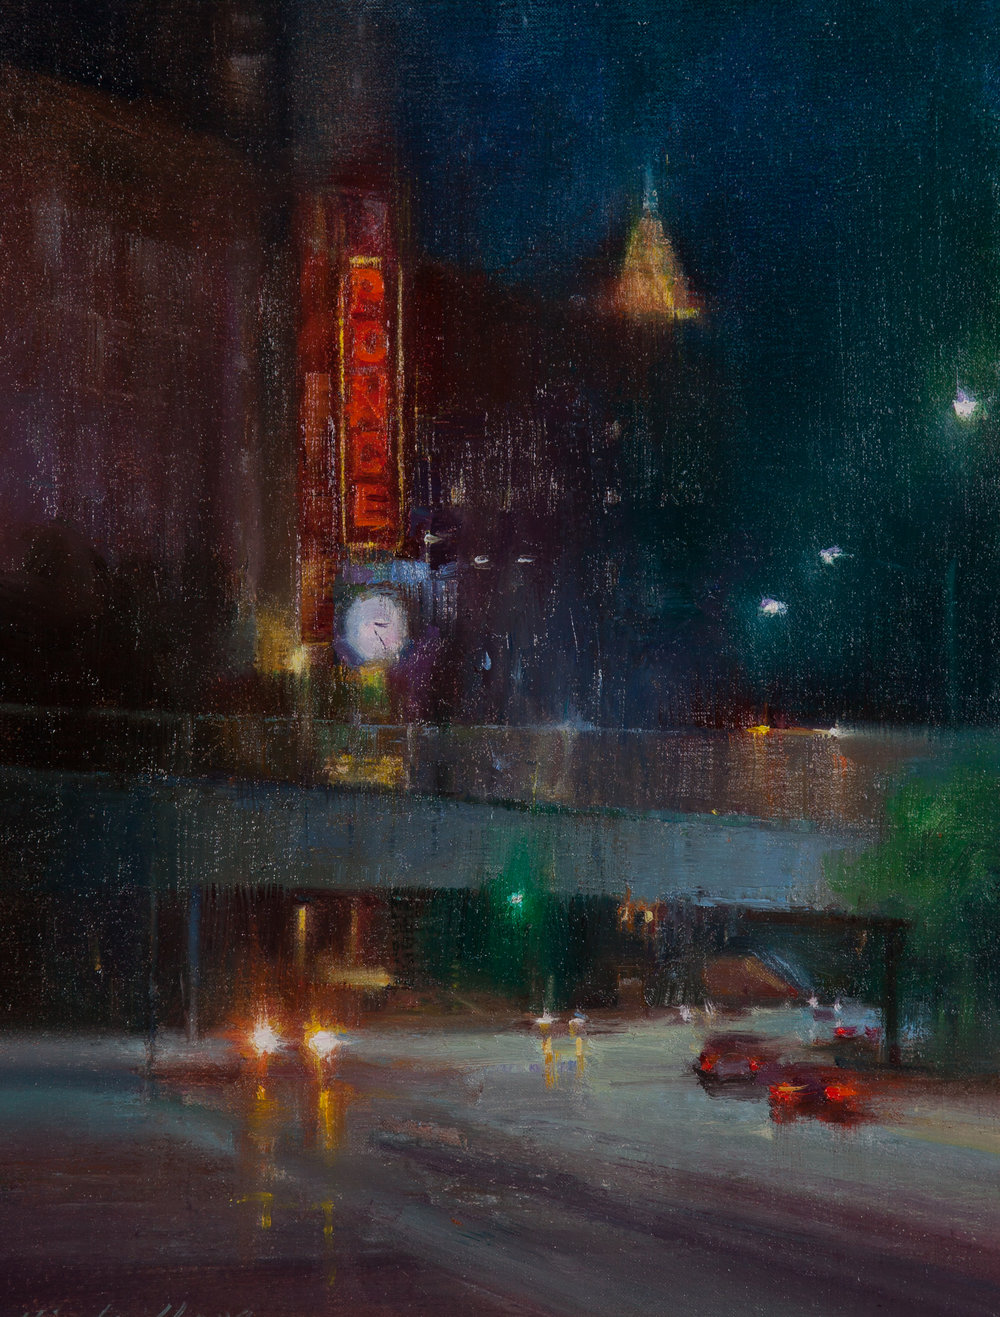 JFM Frames-Best Sense of Mystery Award   'Rainy Night at Ponce' by Hiu Lai Chong